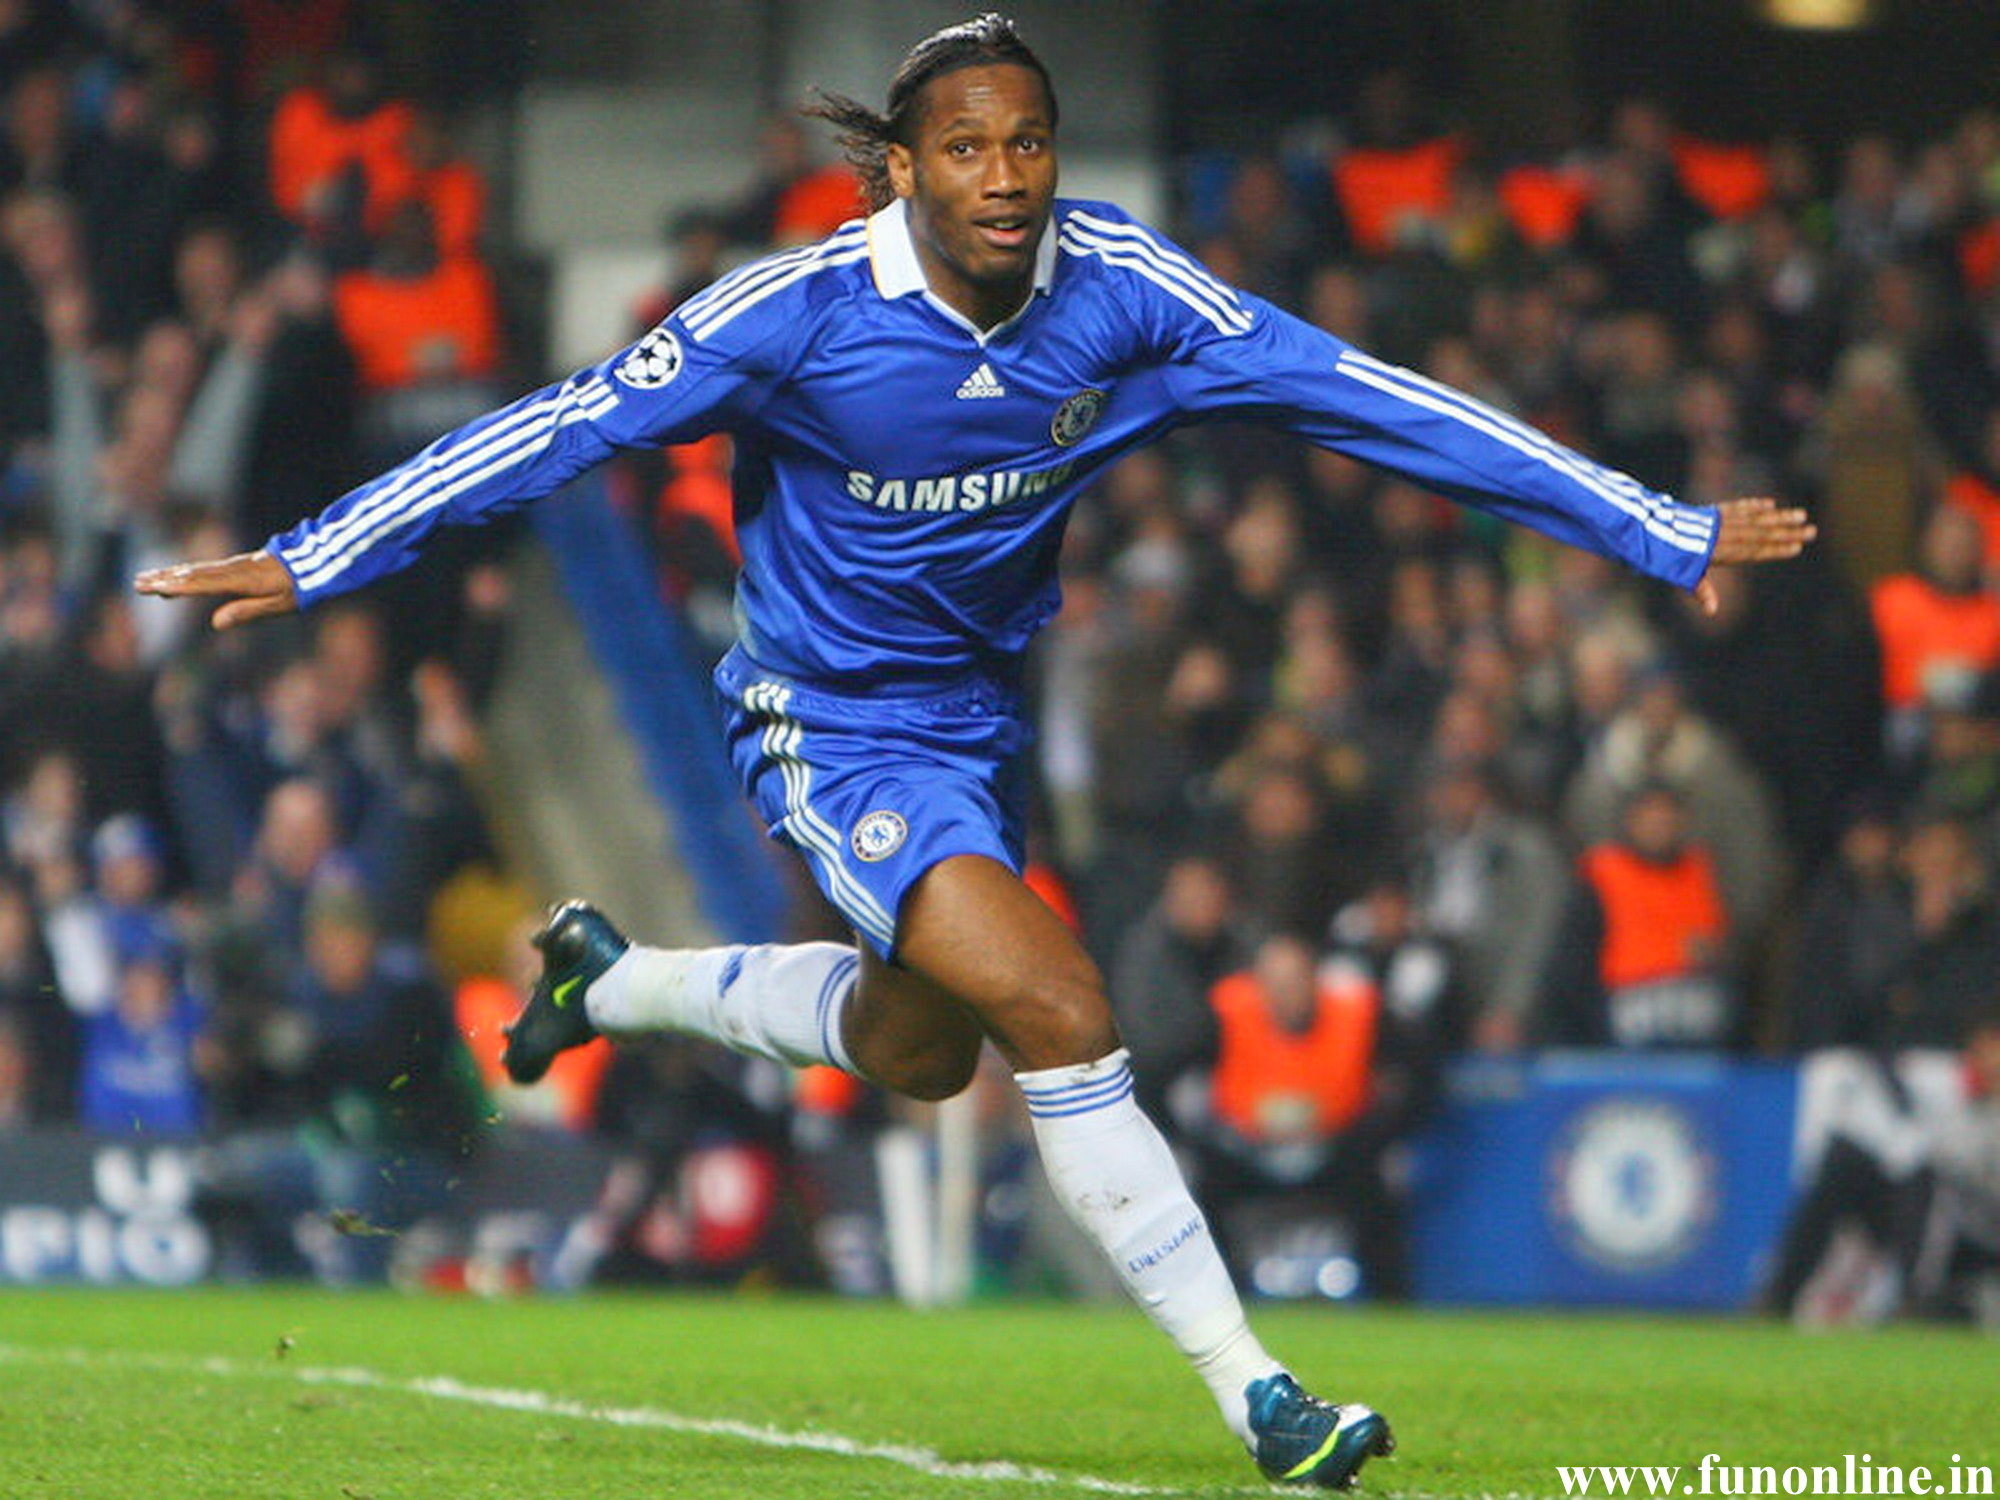 Di r Drogba RETURNING to Chelsea Guus Hiddink Speaks Out